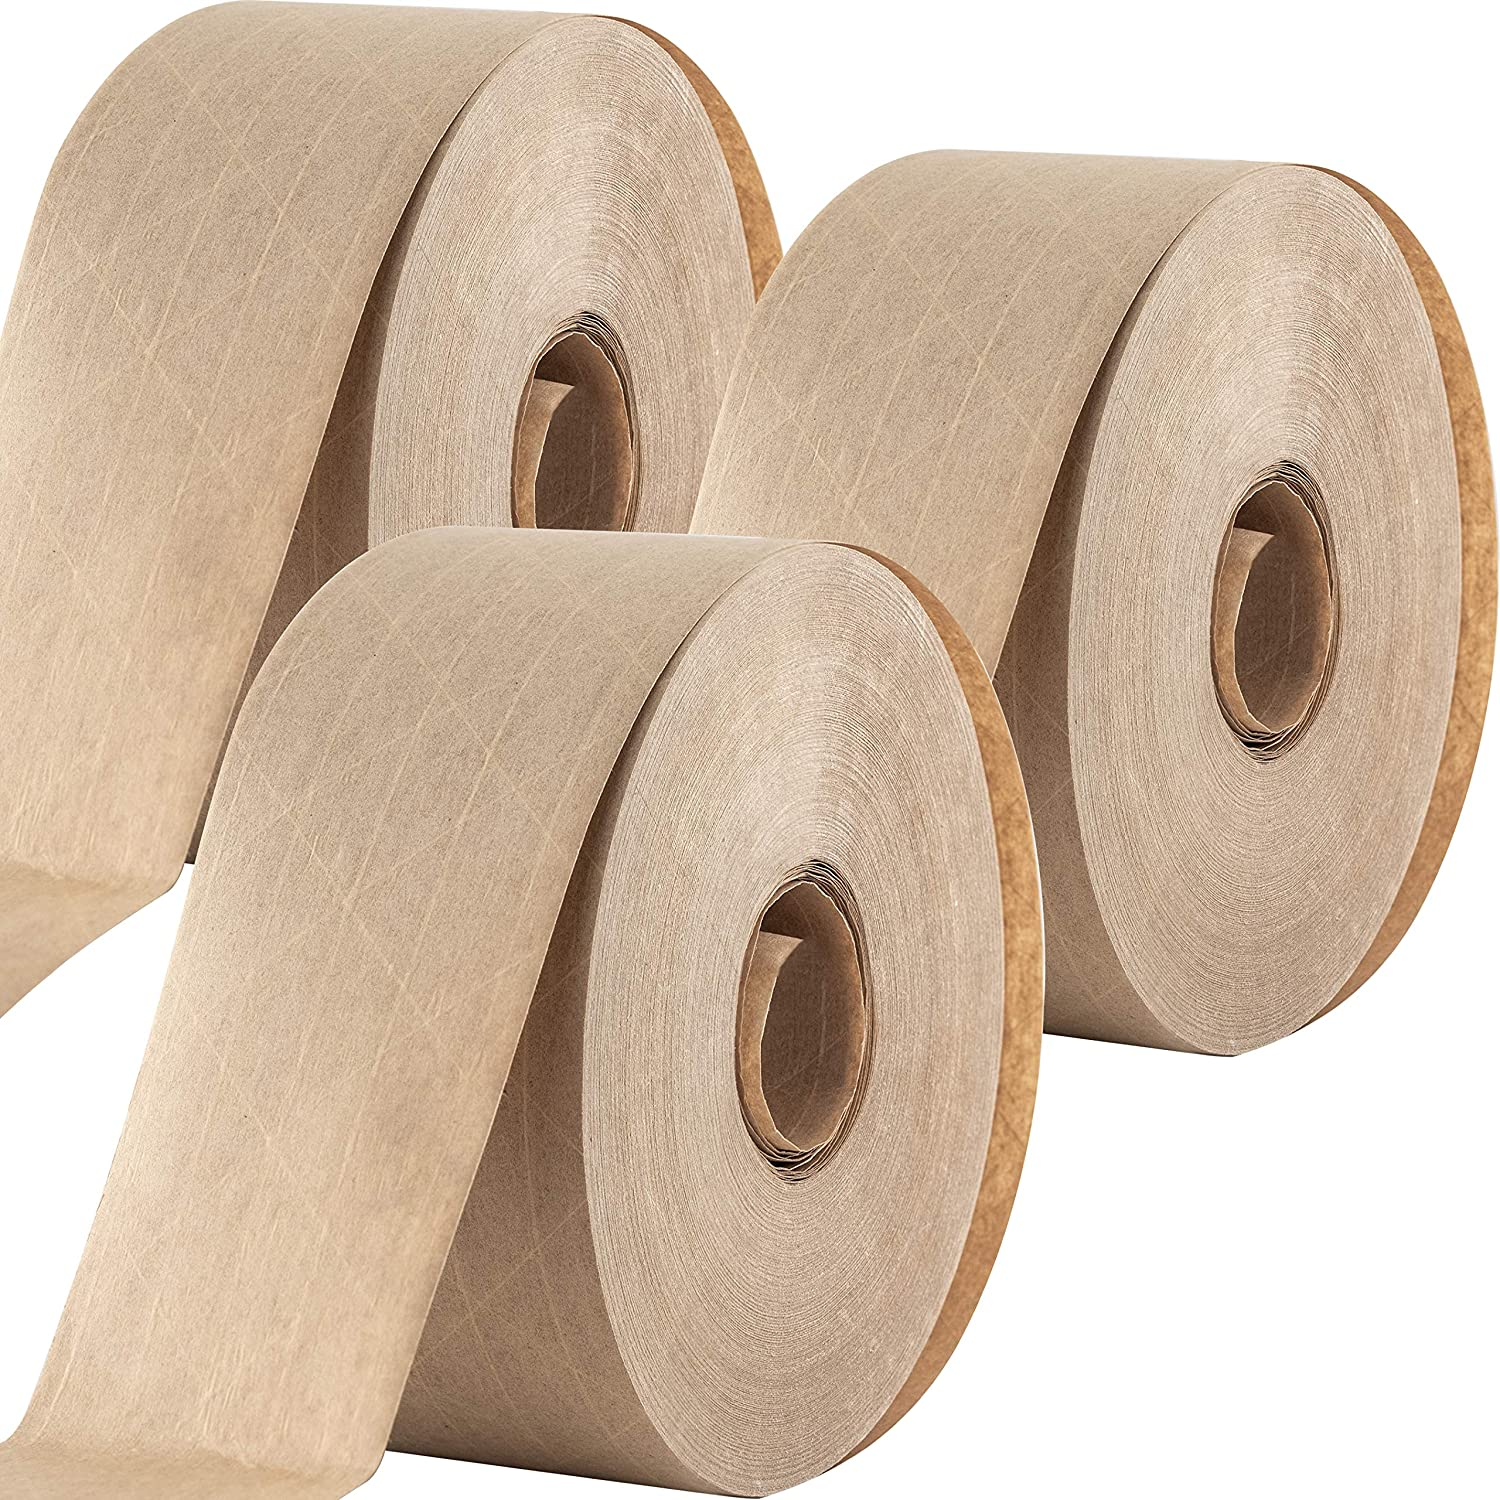 Ultra Durable Water-Activated Tape for Rapid rise Packing Secure 2.75 Mesa Mall Pk. 3